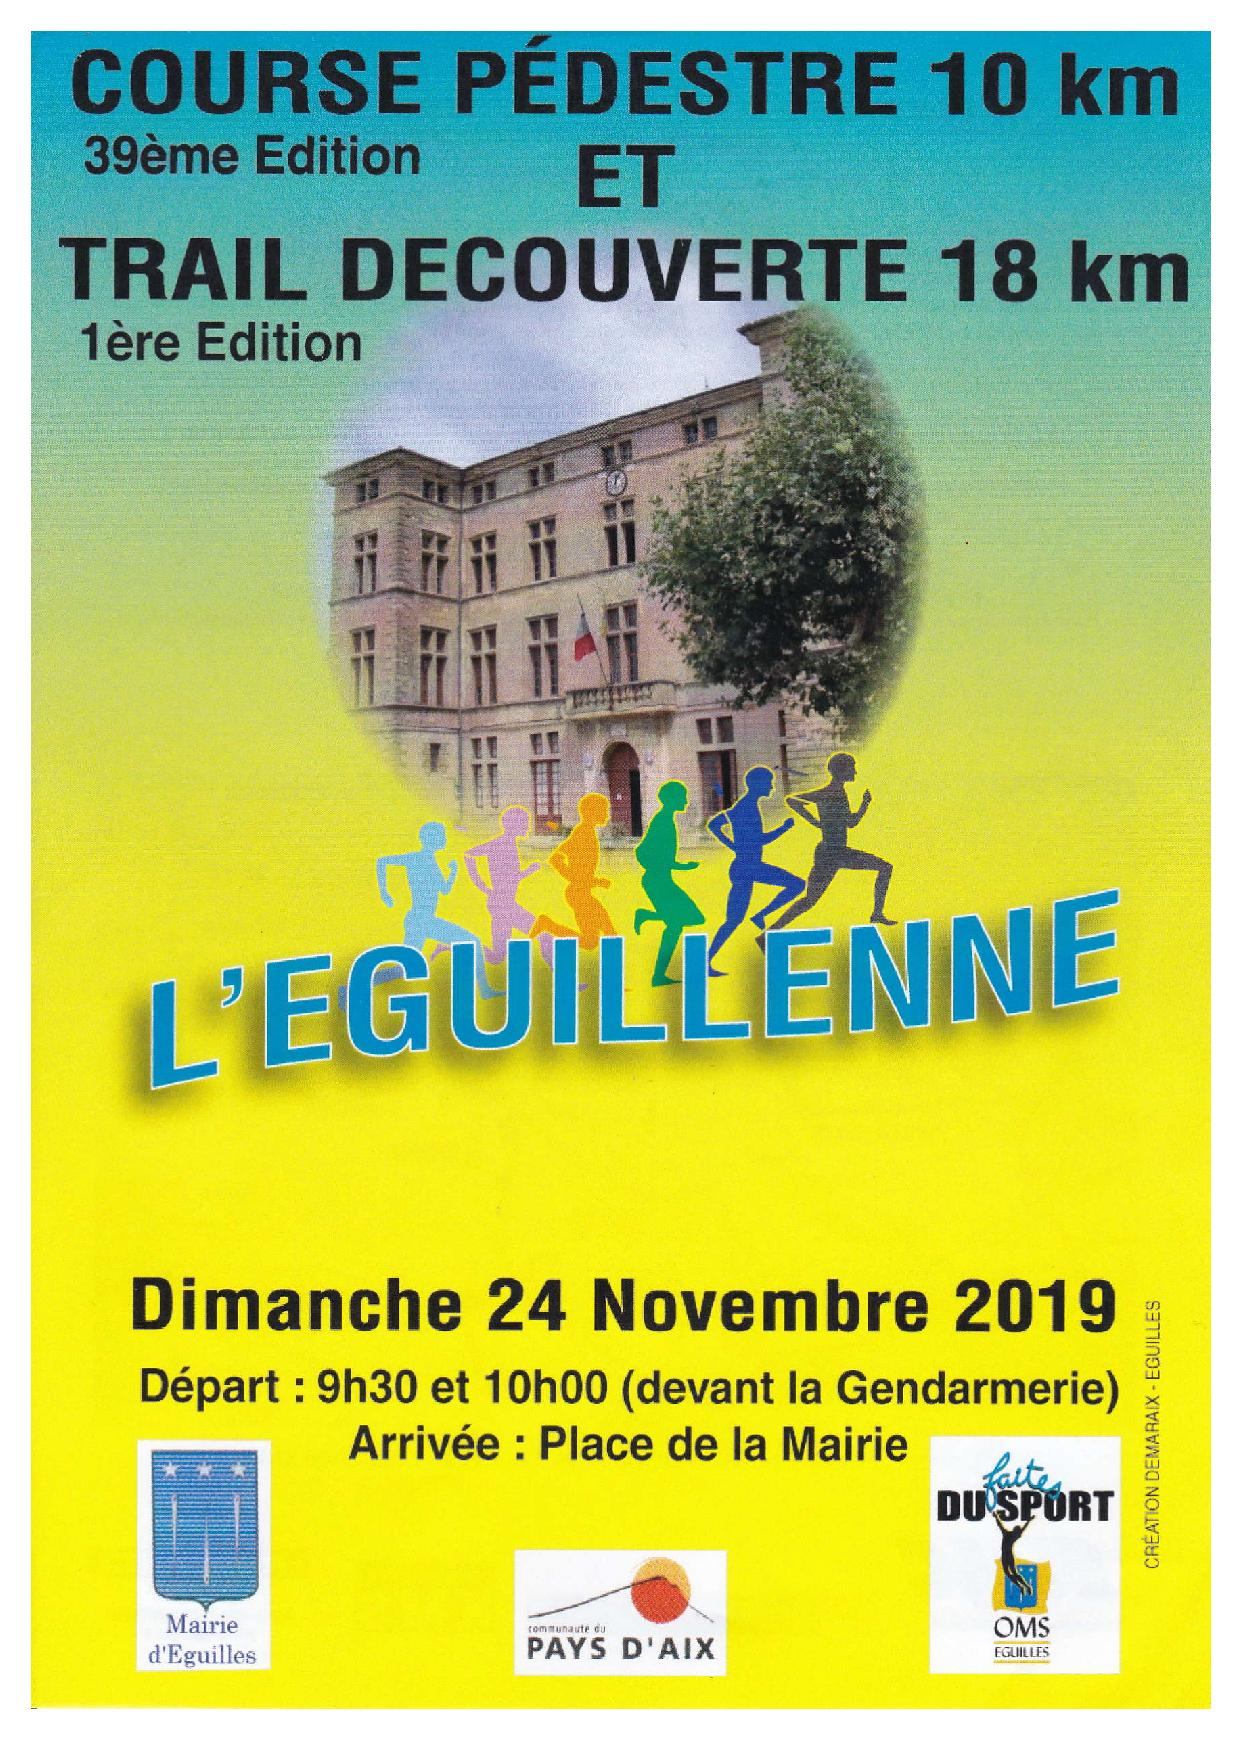 Eguillenne - 18km duo homme/femme